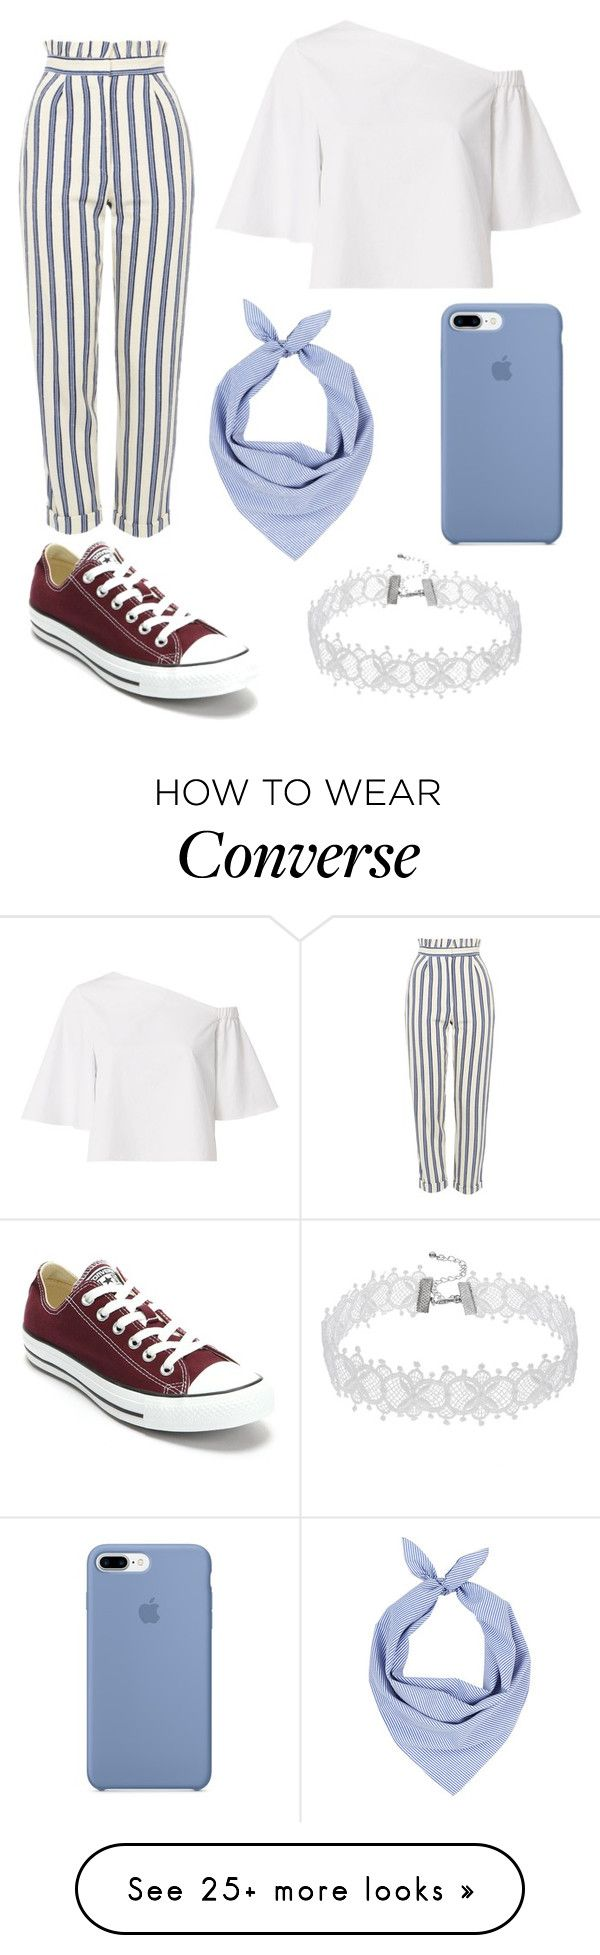 """"""""""" by ruggi-martin on Polyvore featuring Topshop, TIBI, Barneys New York and Converse"""